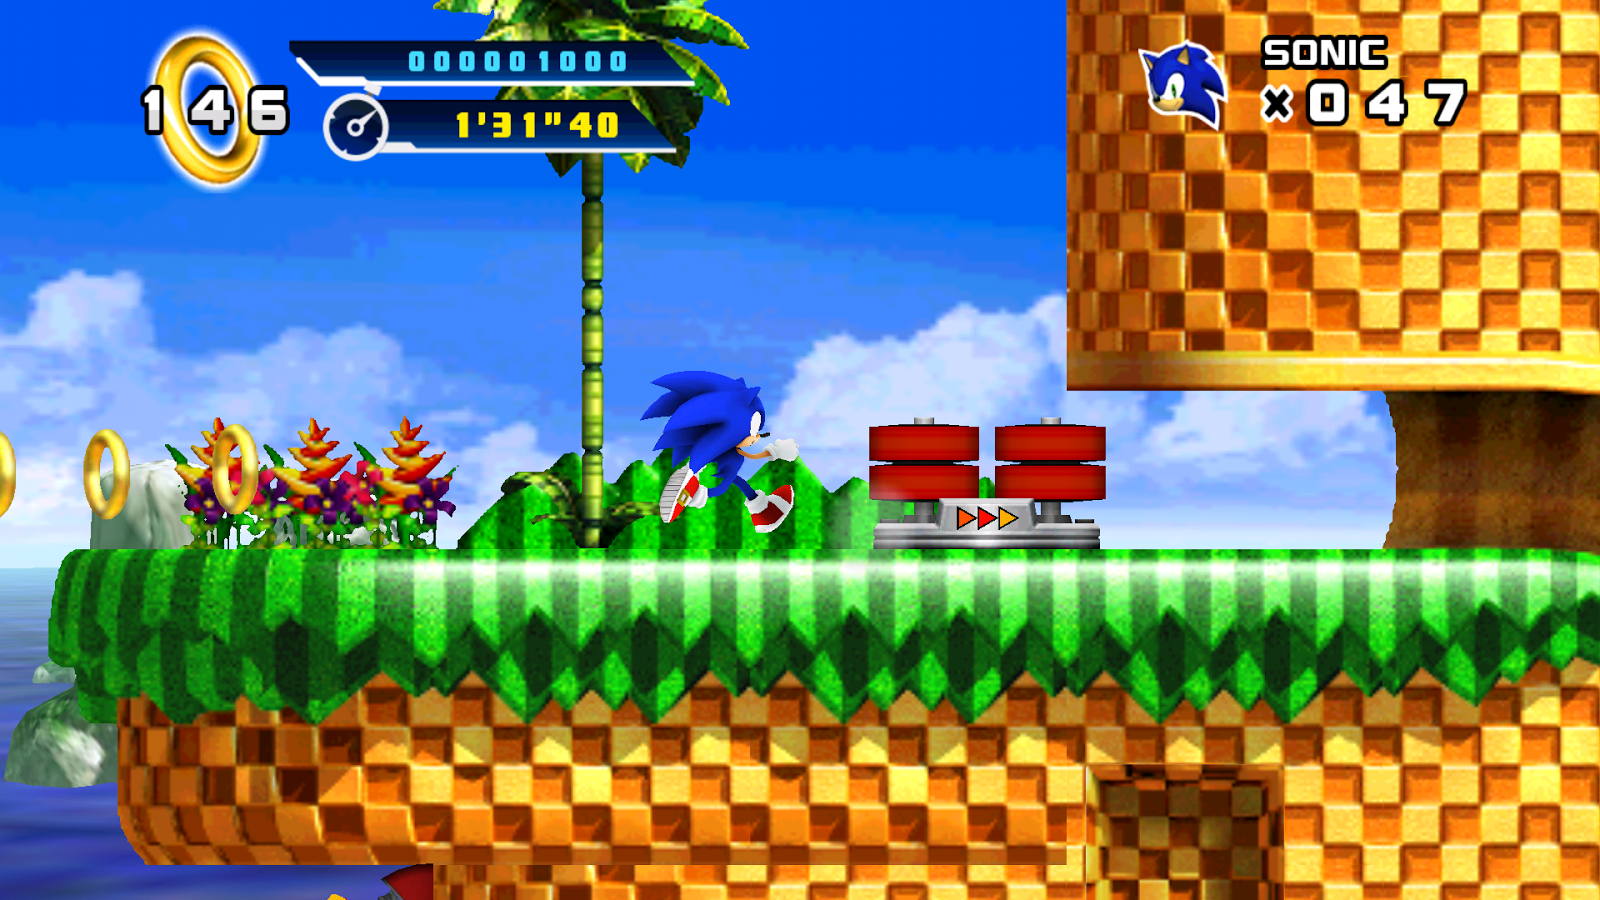 Sonic 4™ Episode I Screenshot 11